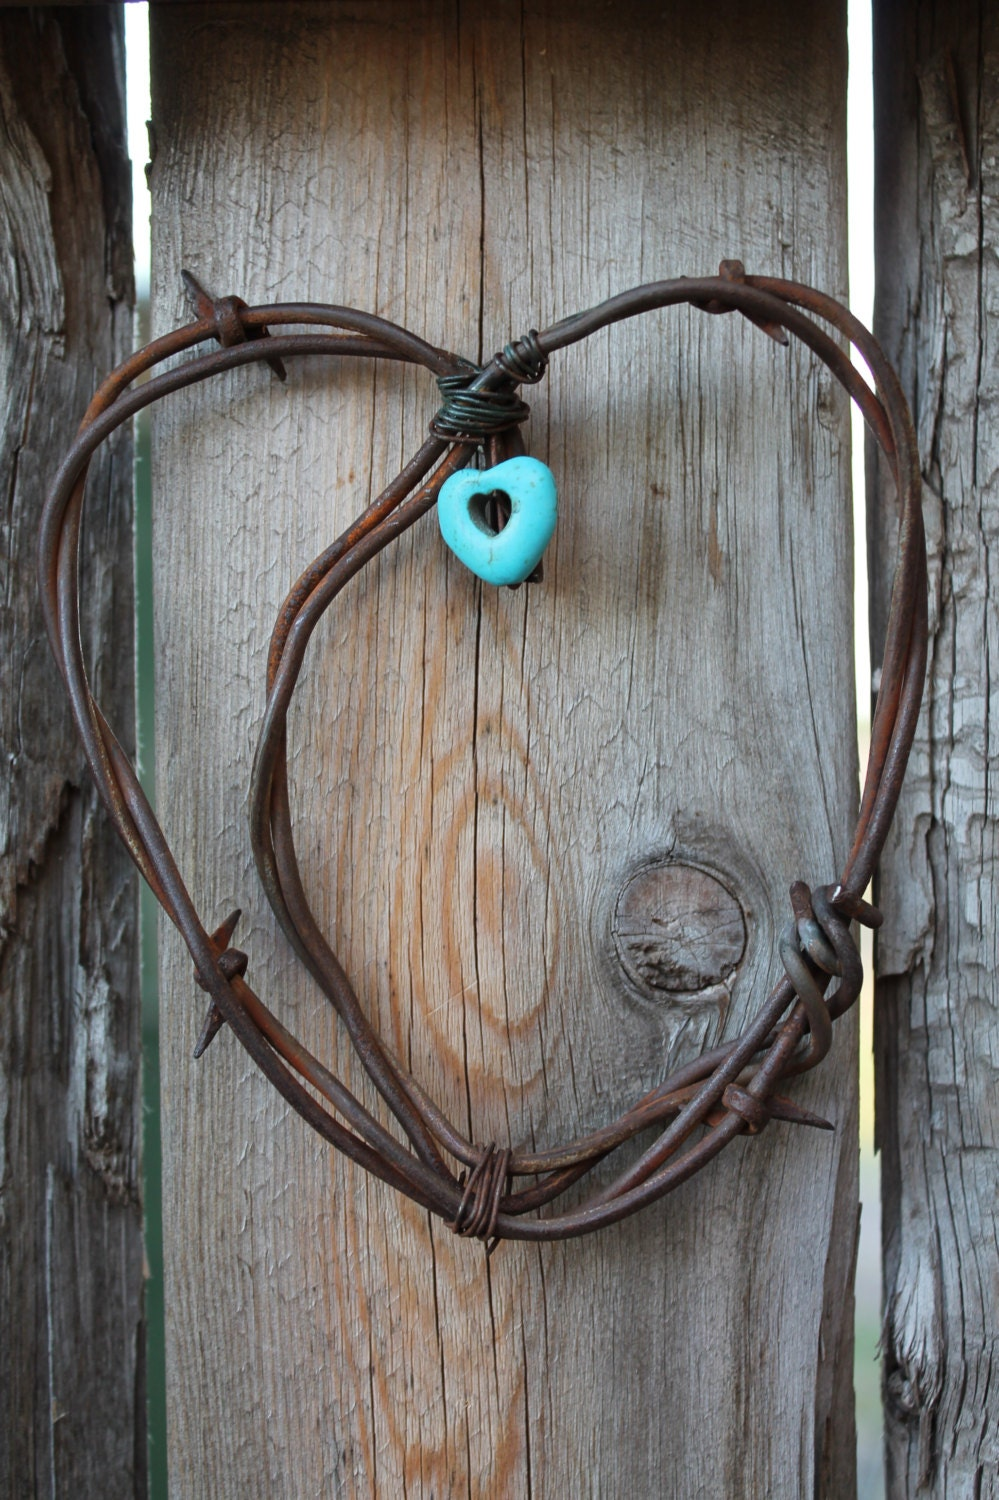 Handmade rusted barbed wire heart wall decor with turquoise